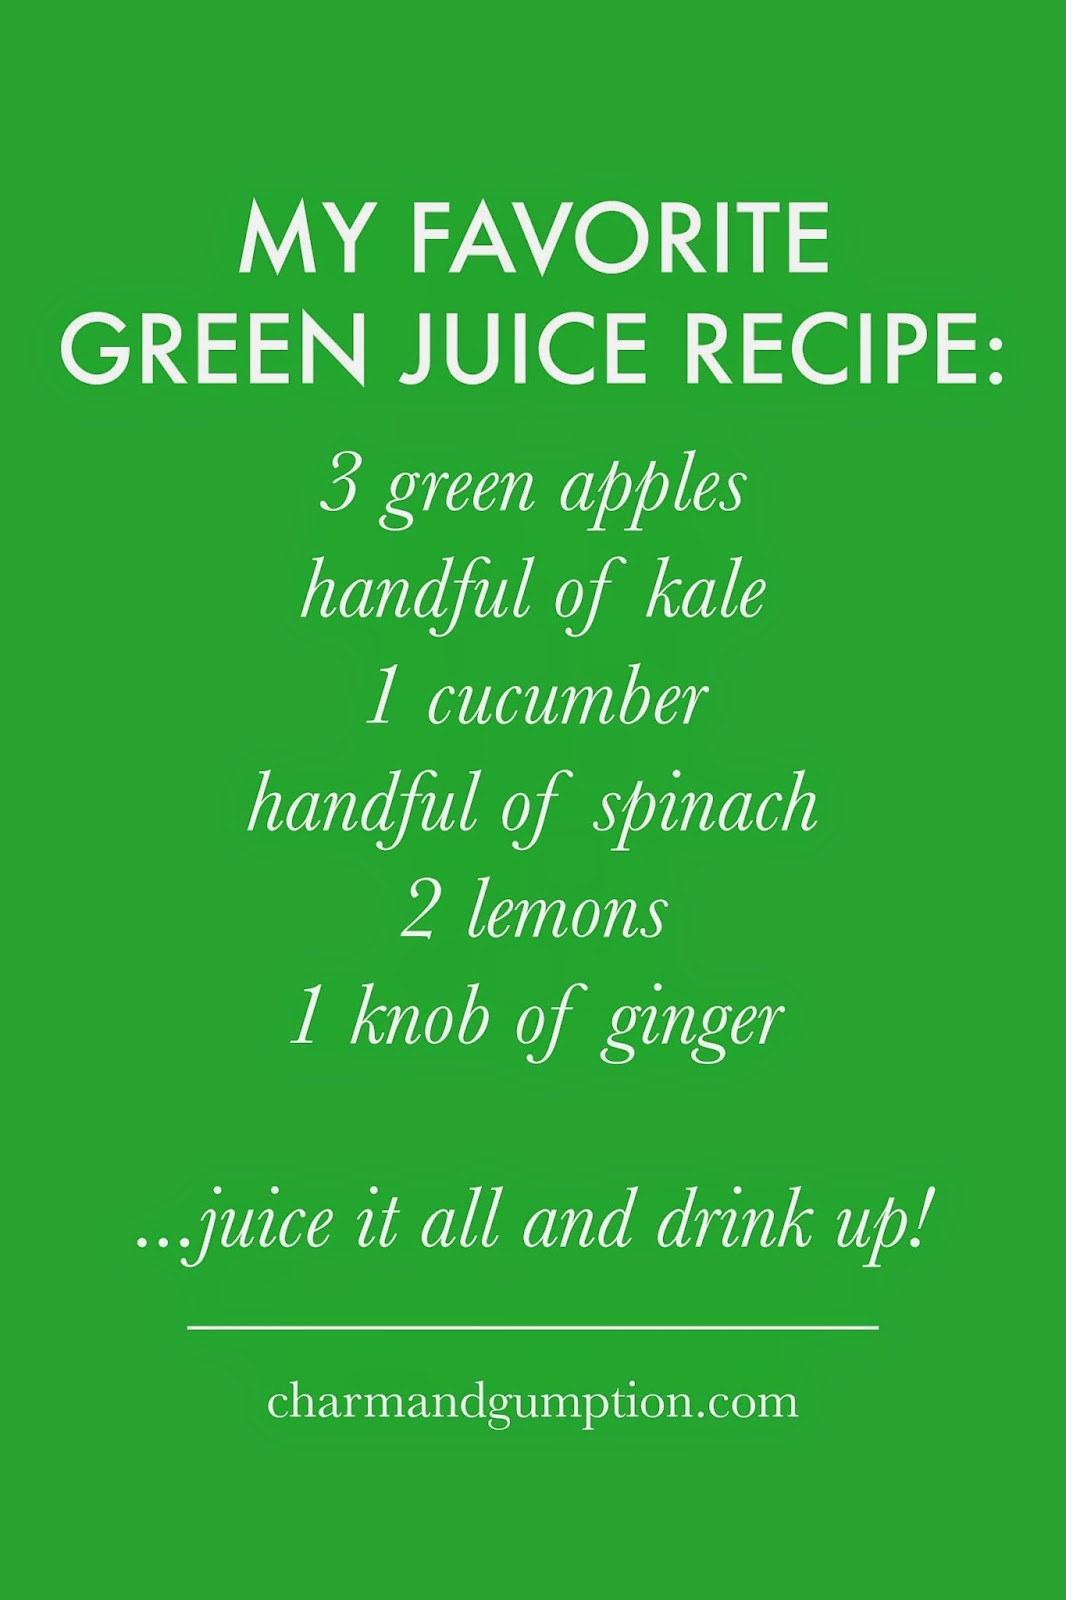 MY GREEN JUICE RECIPE | charm and gumption blog